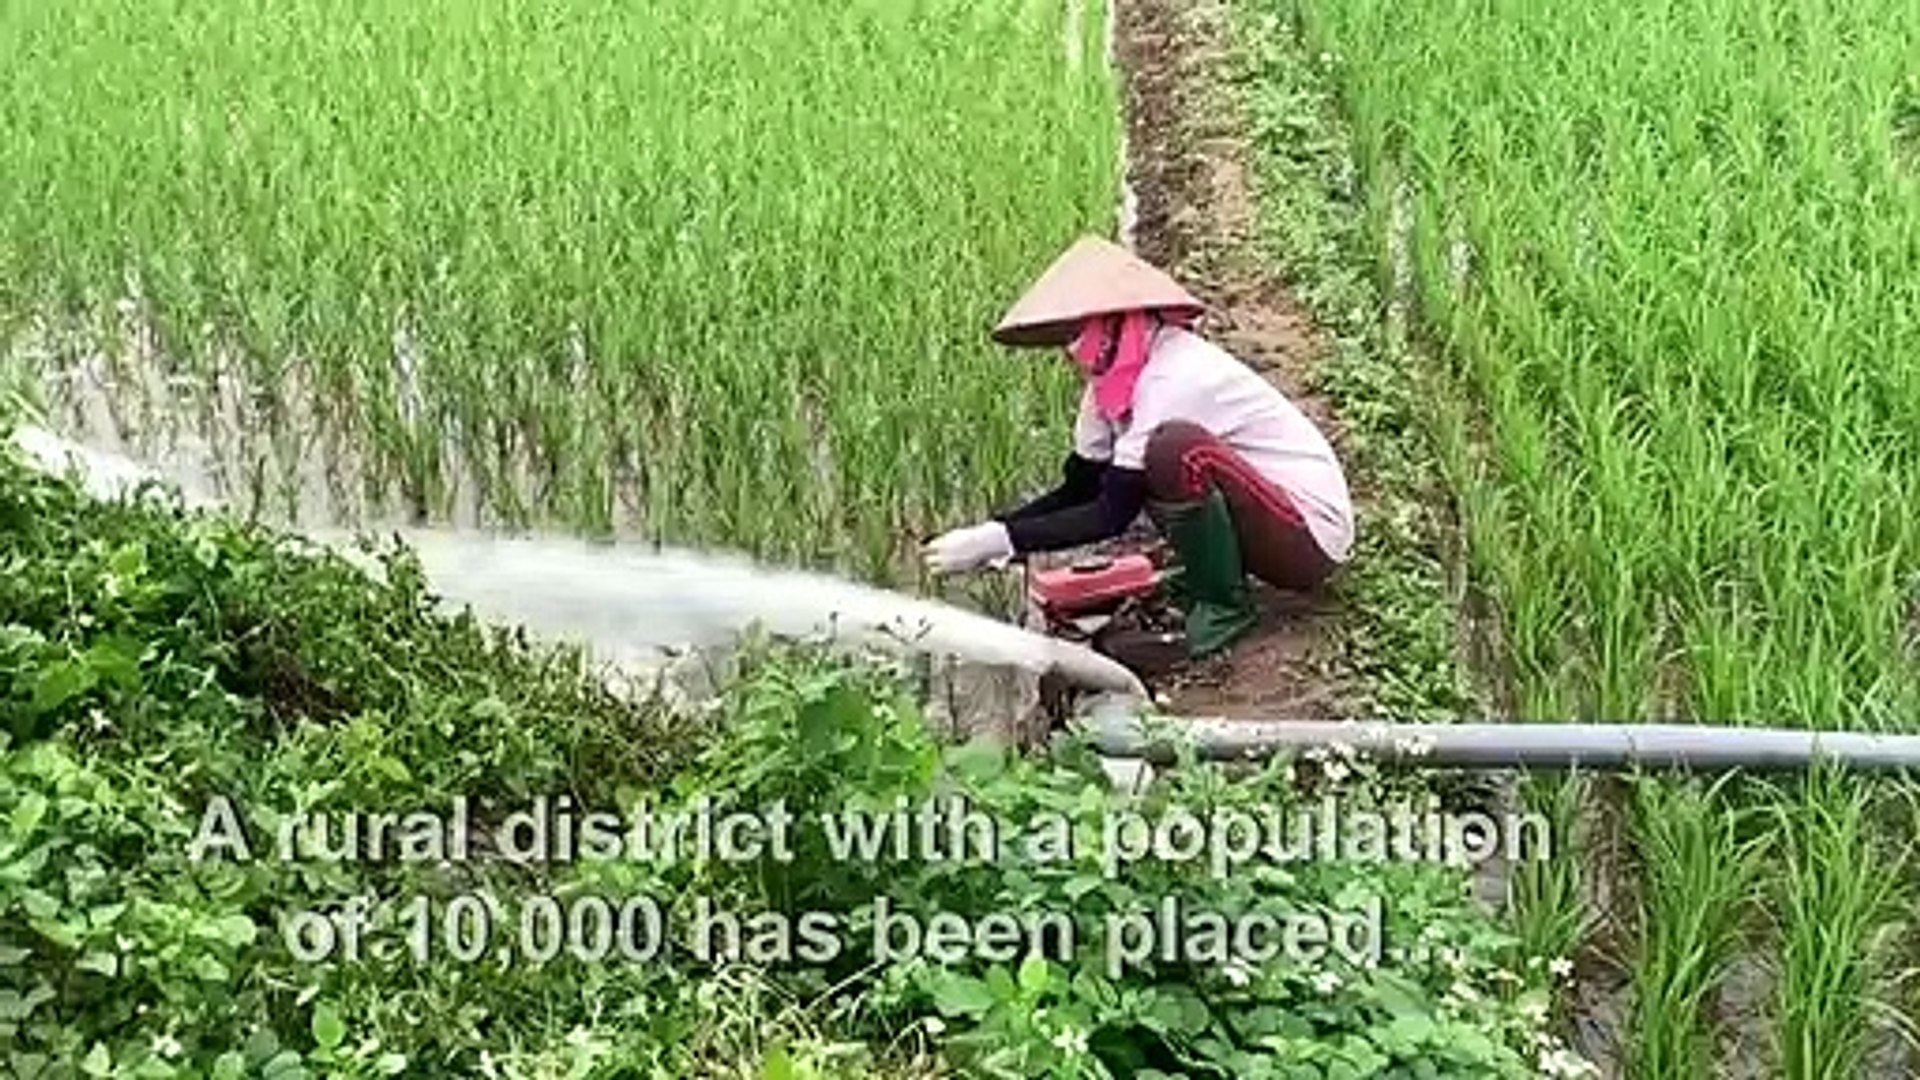 Farmer keeps up daily routine in quarantined Vietnamese district